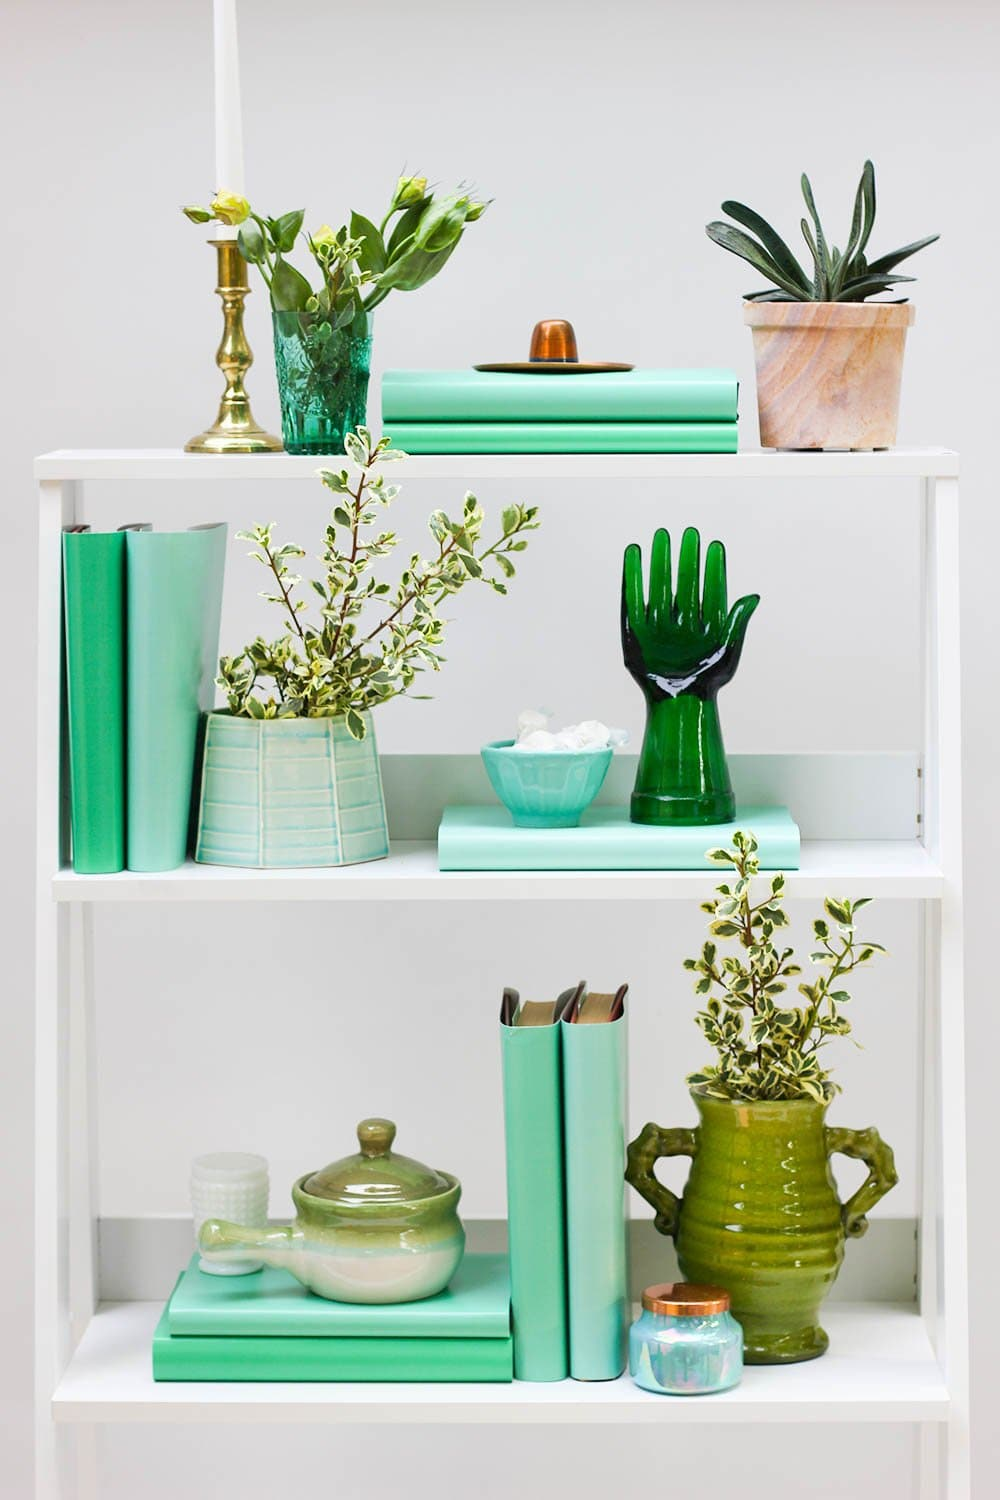 Styled green book shelf with green books from green book covers